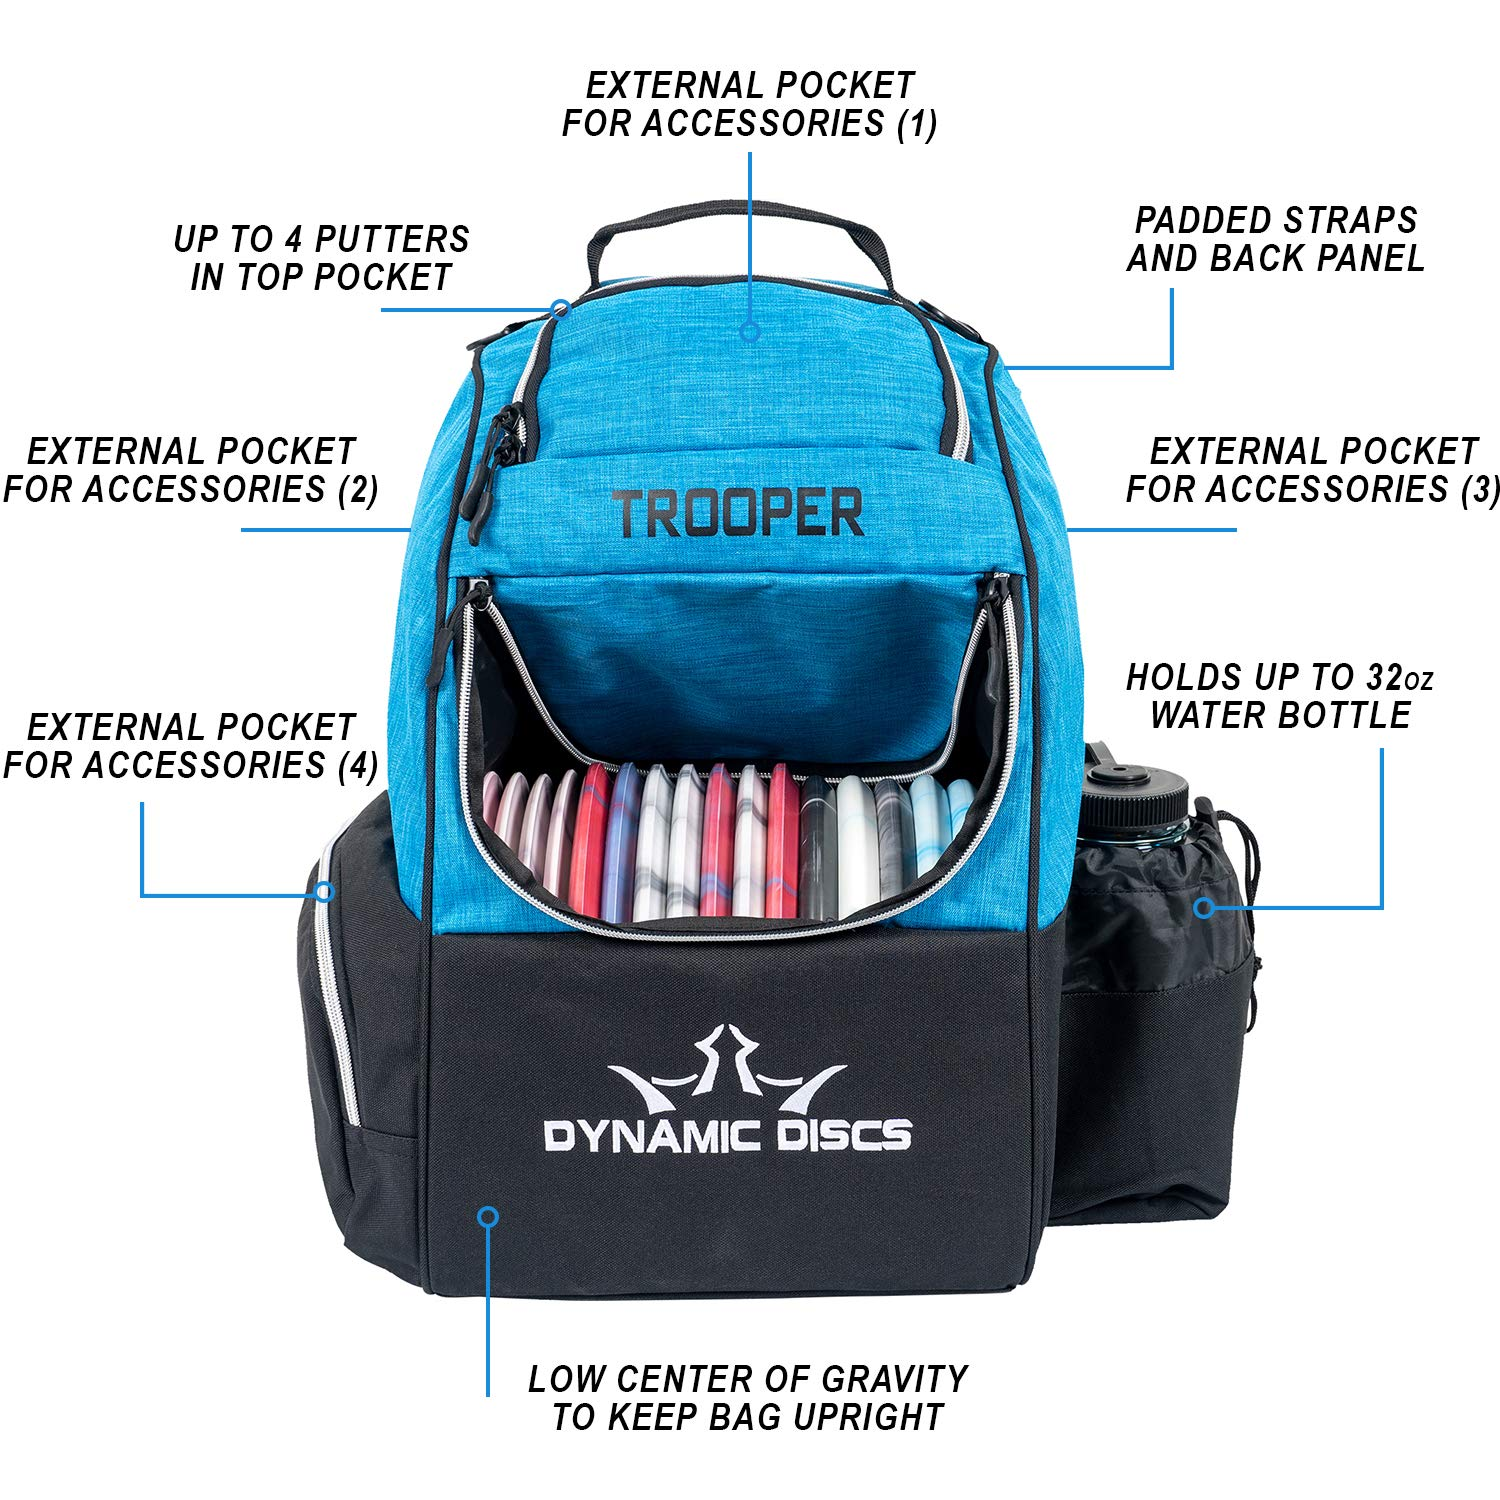 Dynamic Discs Trooper Disc Golf Backpack   Heather Blue   Frisbee Disc Golf Bag with 18+ Disc Capacity   Introductory Disc Golf Backpack   Lightweight and Durable by D·D DYNAMIC DISCS